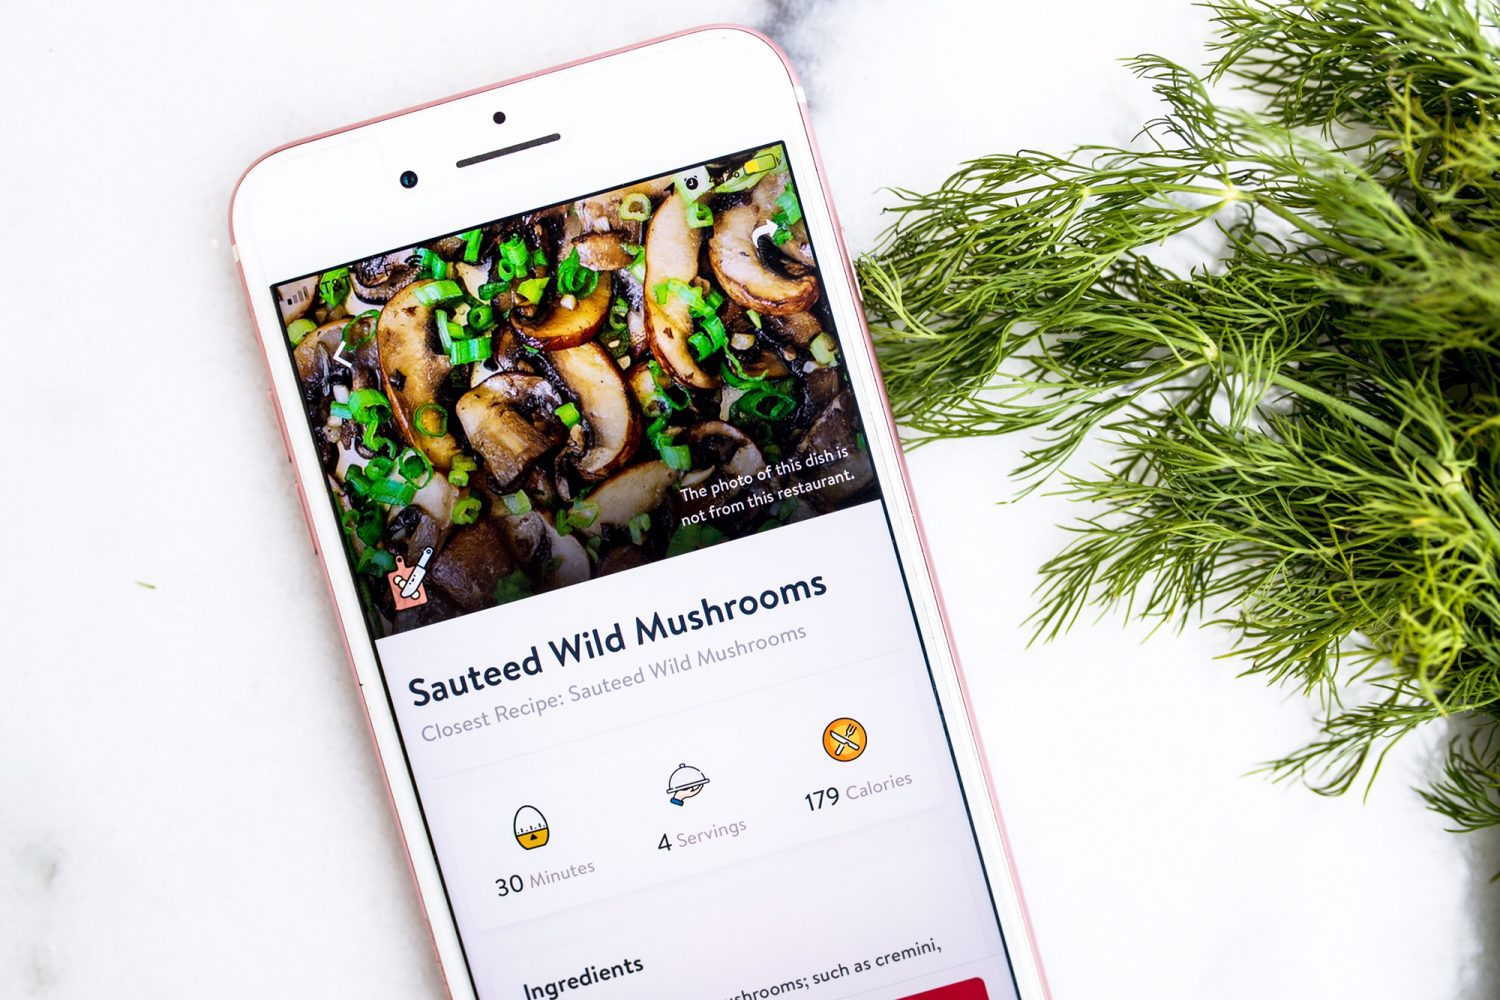 howudish, healthy eating, prodishstyles, dish like a pro, fitness, athletes, healthy recipes, restaurant options, nutritional value, favorite athletes diet, low carb, high fiber, vegetarian, vegan, app, healthy eating app, apps for diets, diet apps